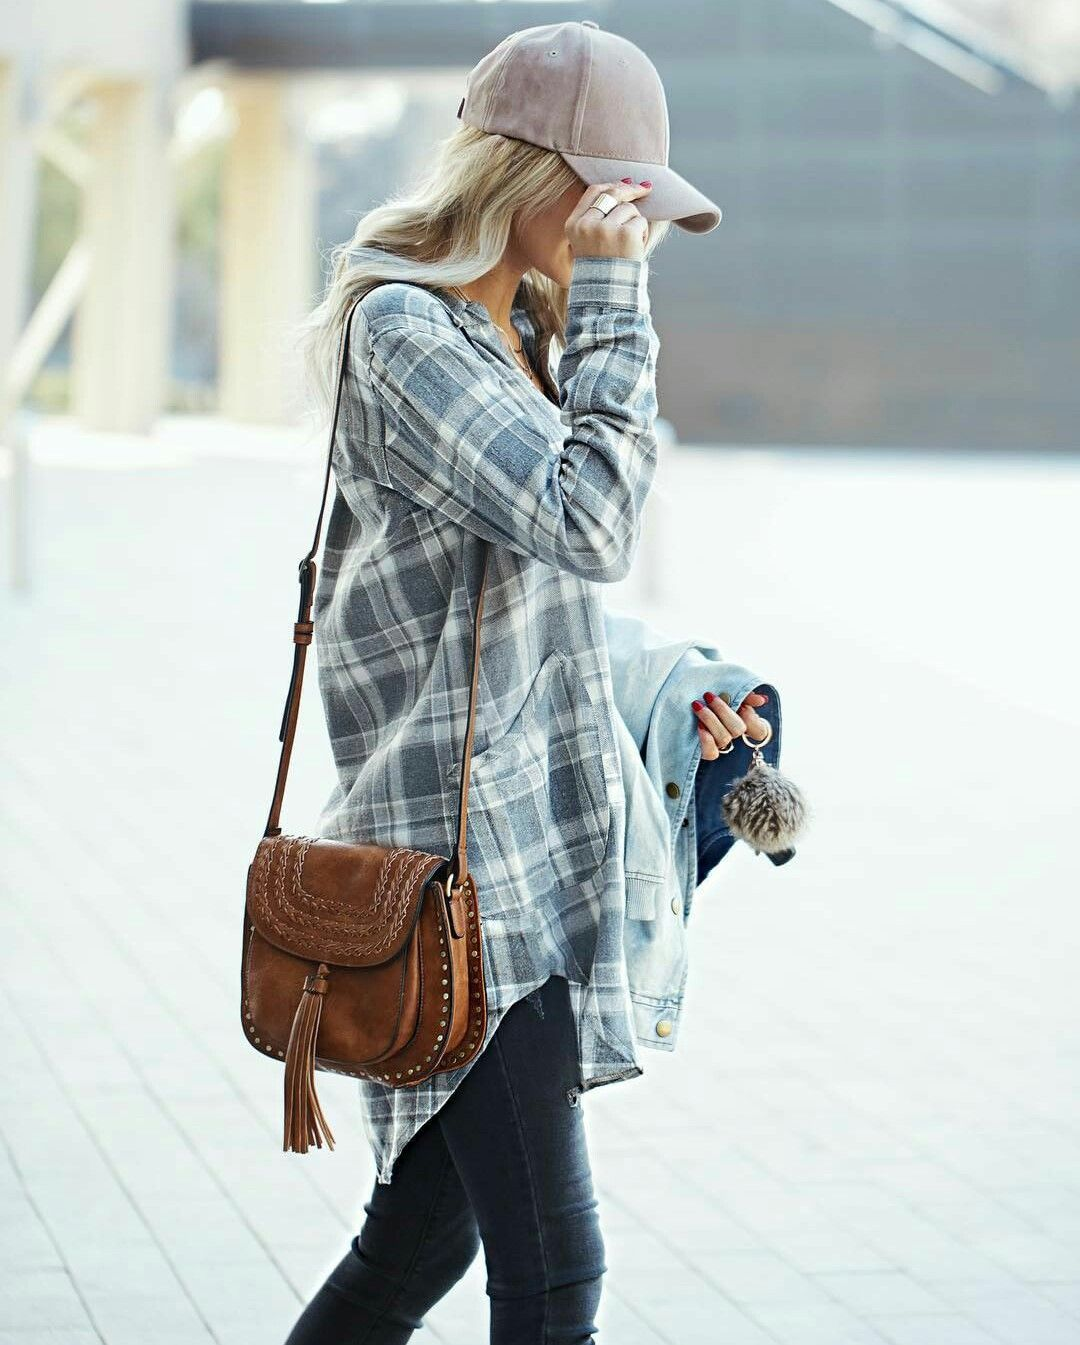 Flannel dress for women  Pin by Kayleigh Noelle on Fashion  Pinterest  Fashion shops